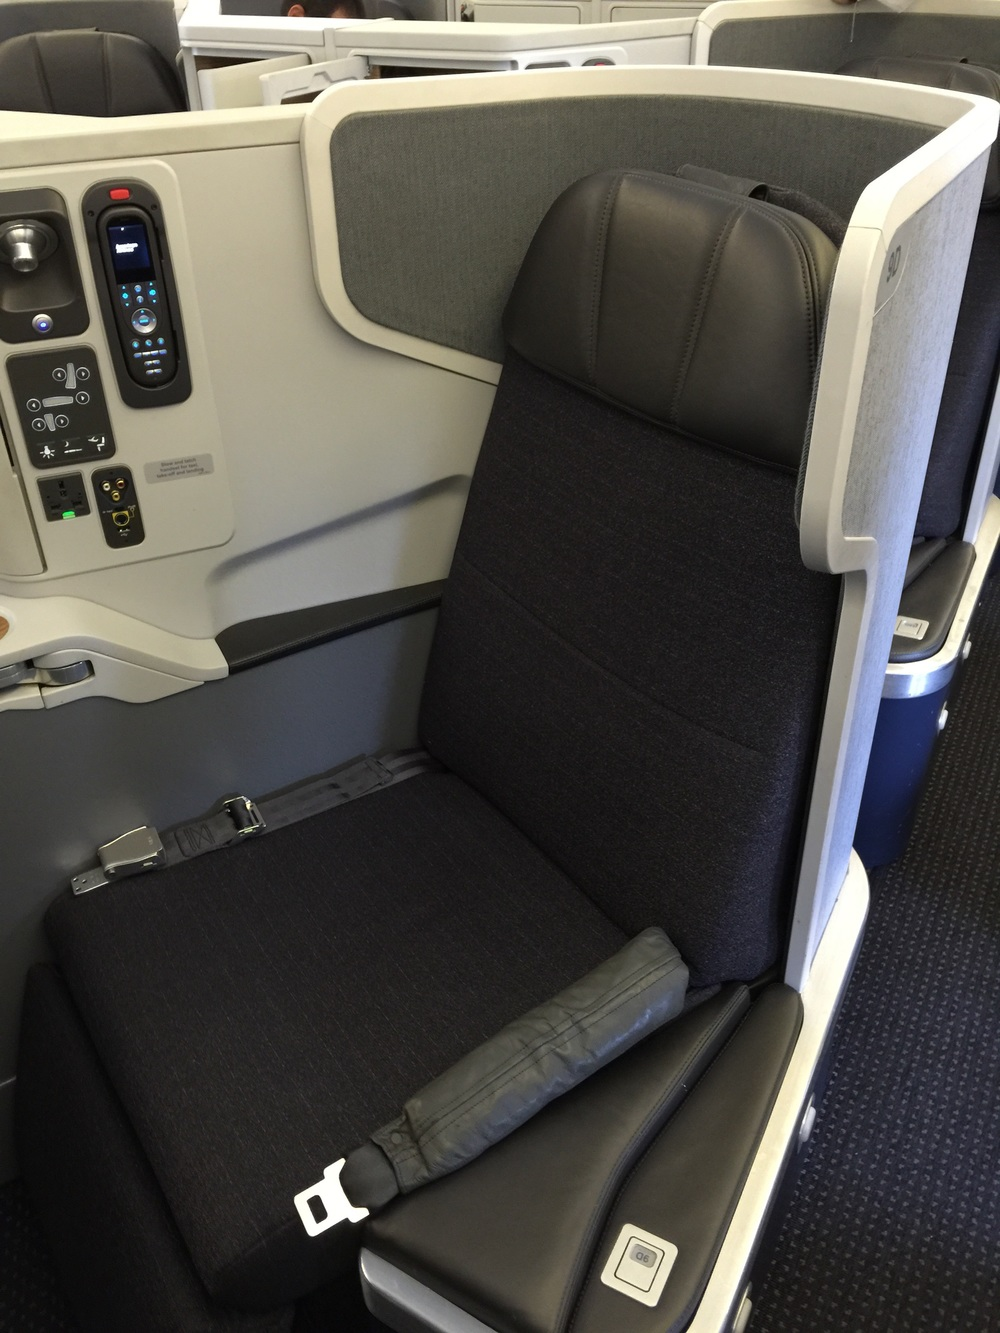 American Airlines has a strong product in business class on its Boeing 777-300ERs.